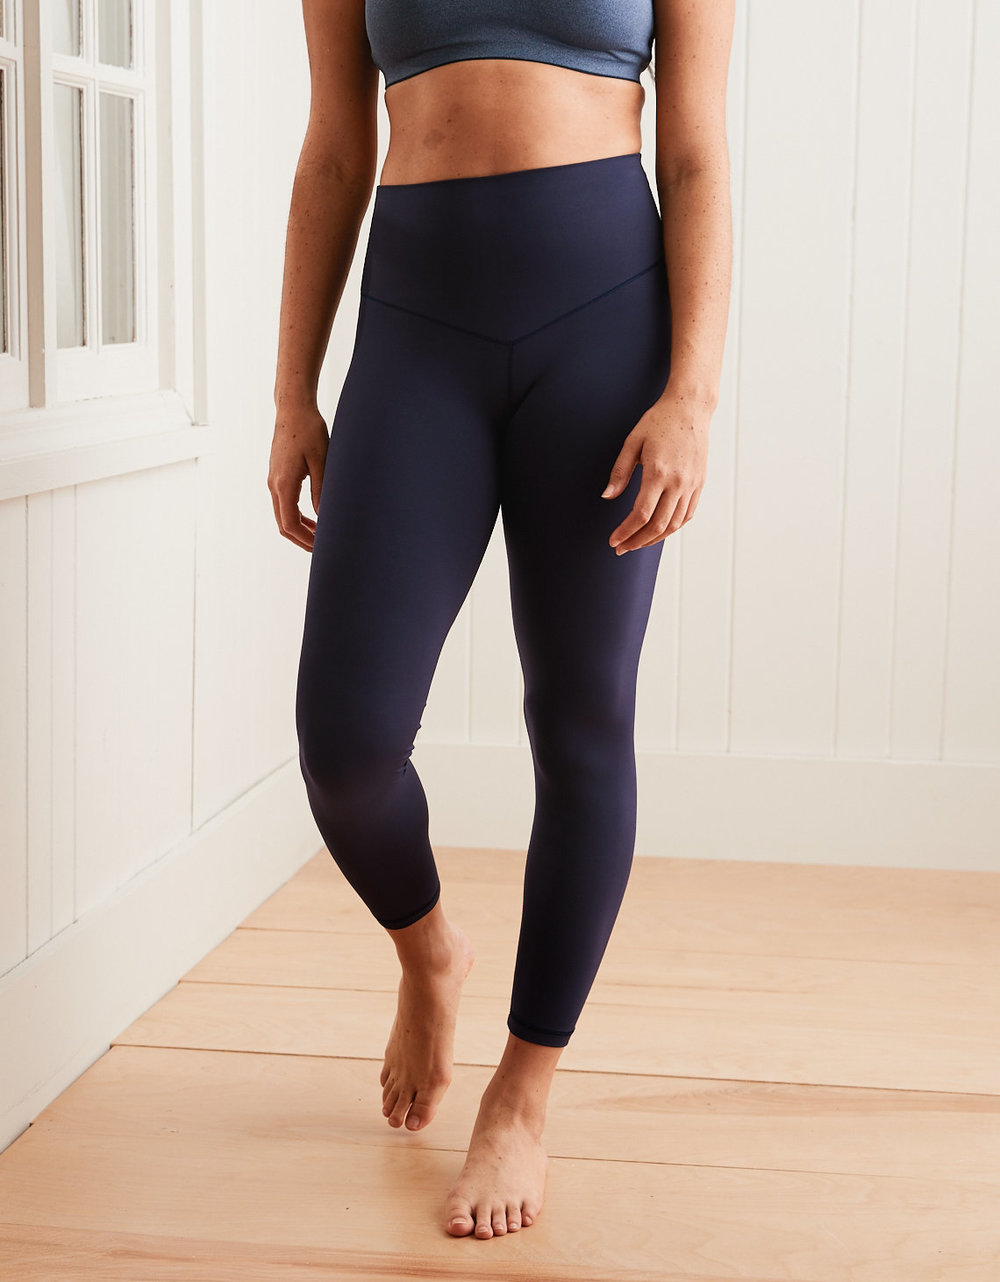 aerie real me leggings.jpg